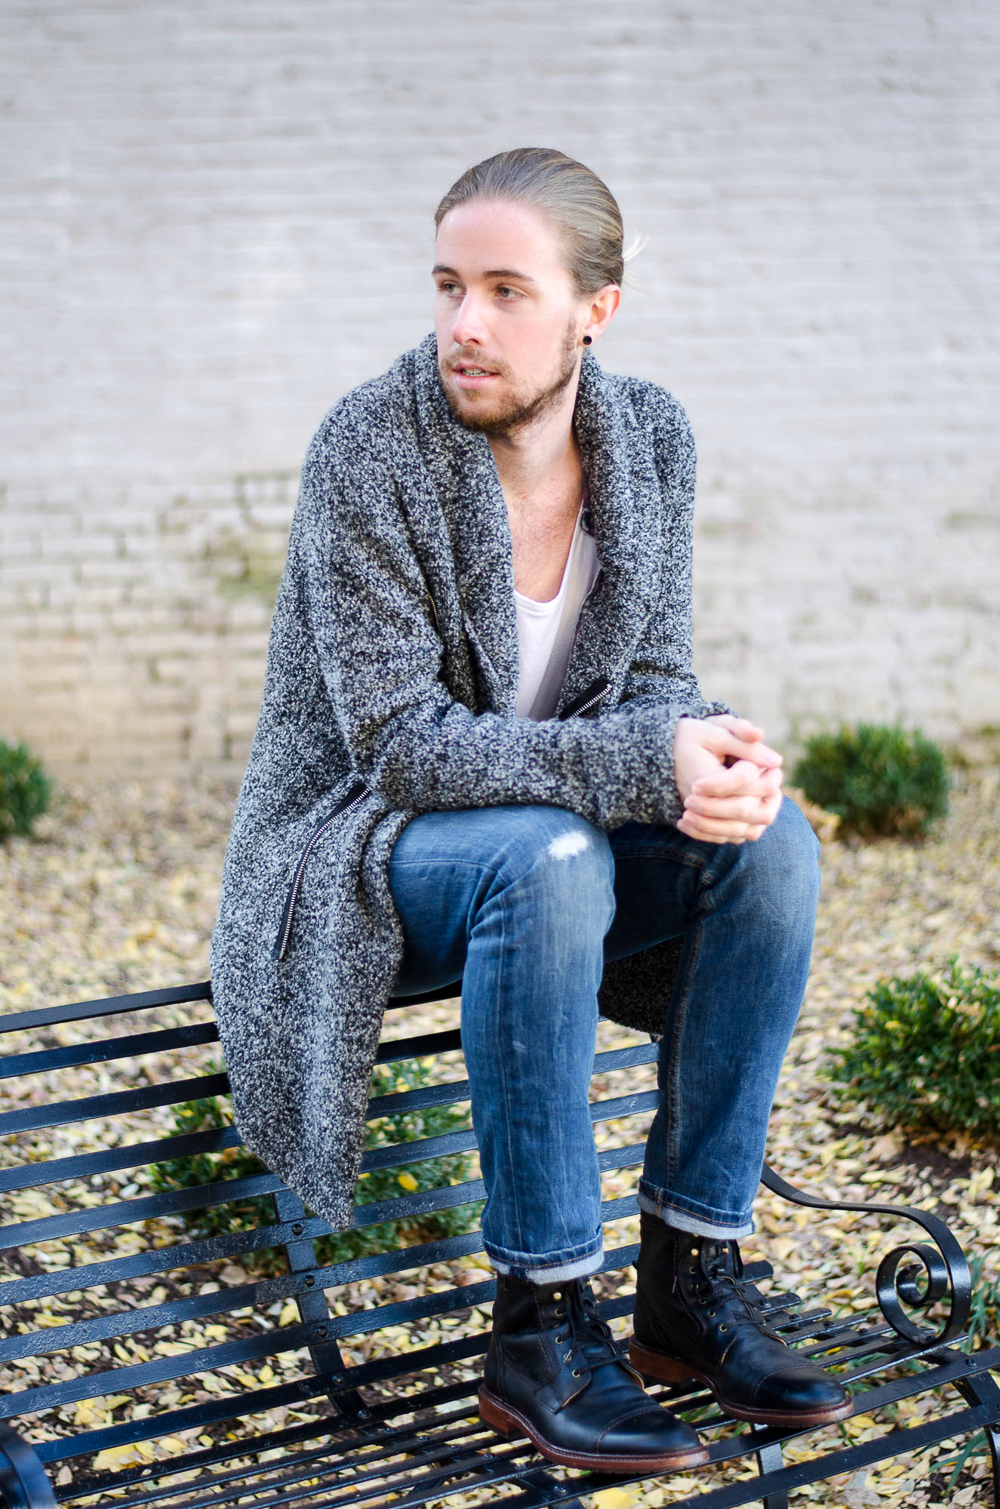 The Kentucky Gent, a Louisville, Kentucky life and style blogger, in H&M Sweater, Colorfast Plaid Shirt, Levi's 511 jeans, Richer Poorer Socks, and Trask Union Boots.